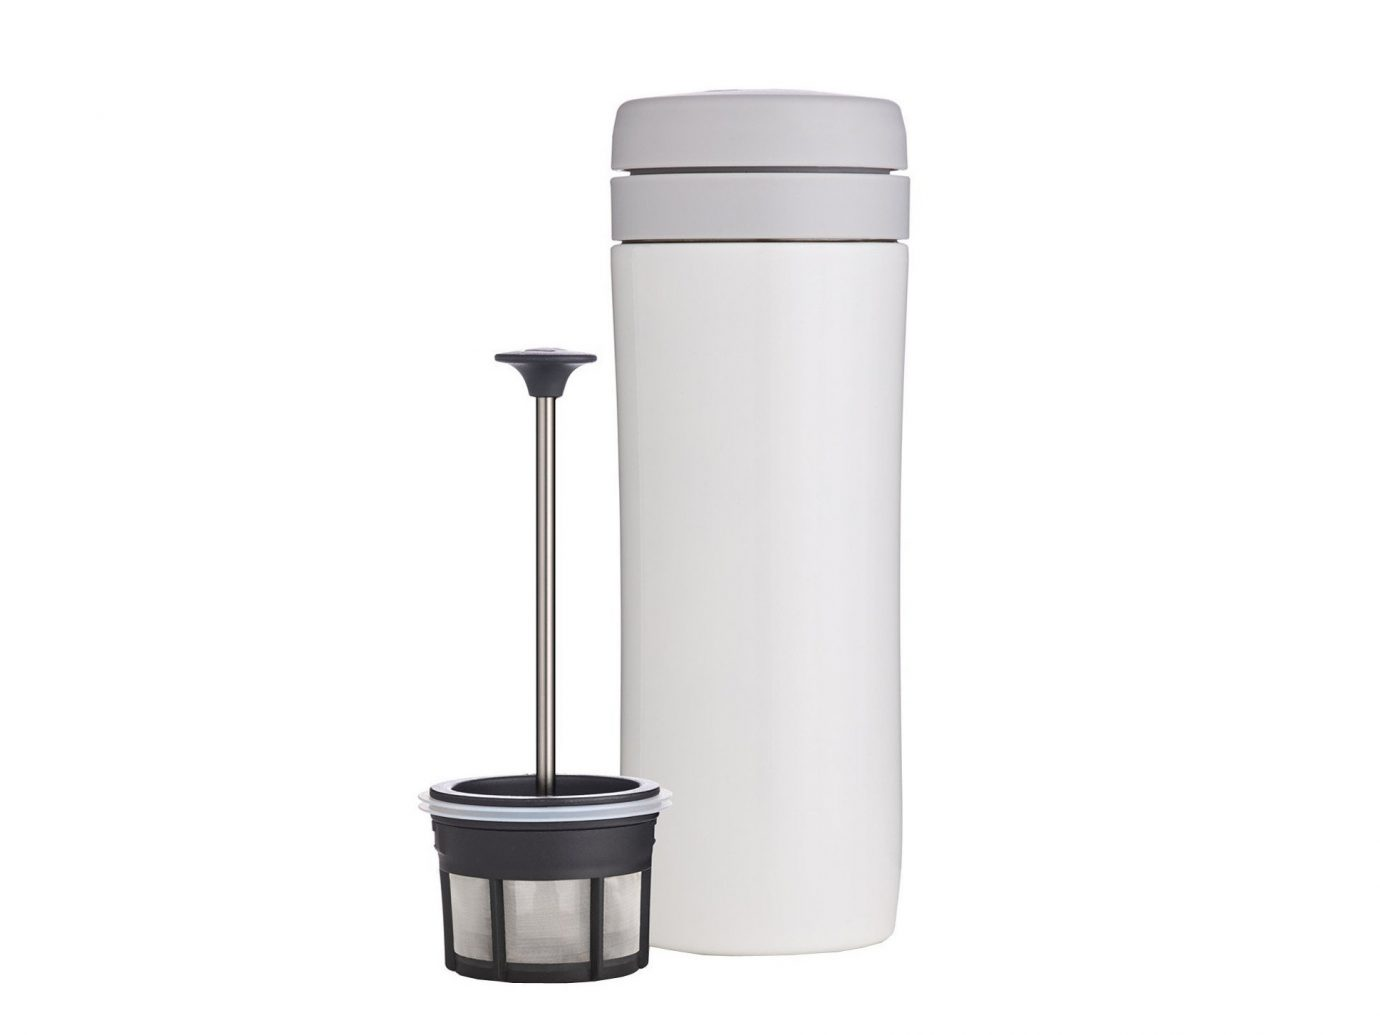 Gift Guides Travel Shop Travel Tech indoor product design product drinkware vacuum flask kitchen appliance